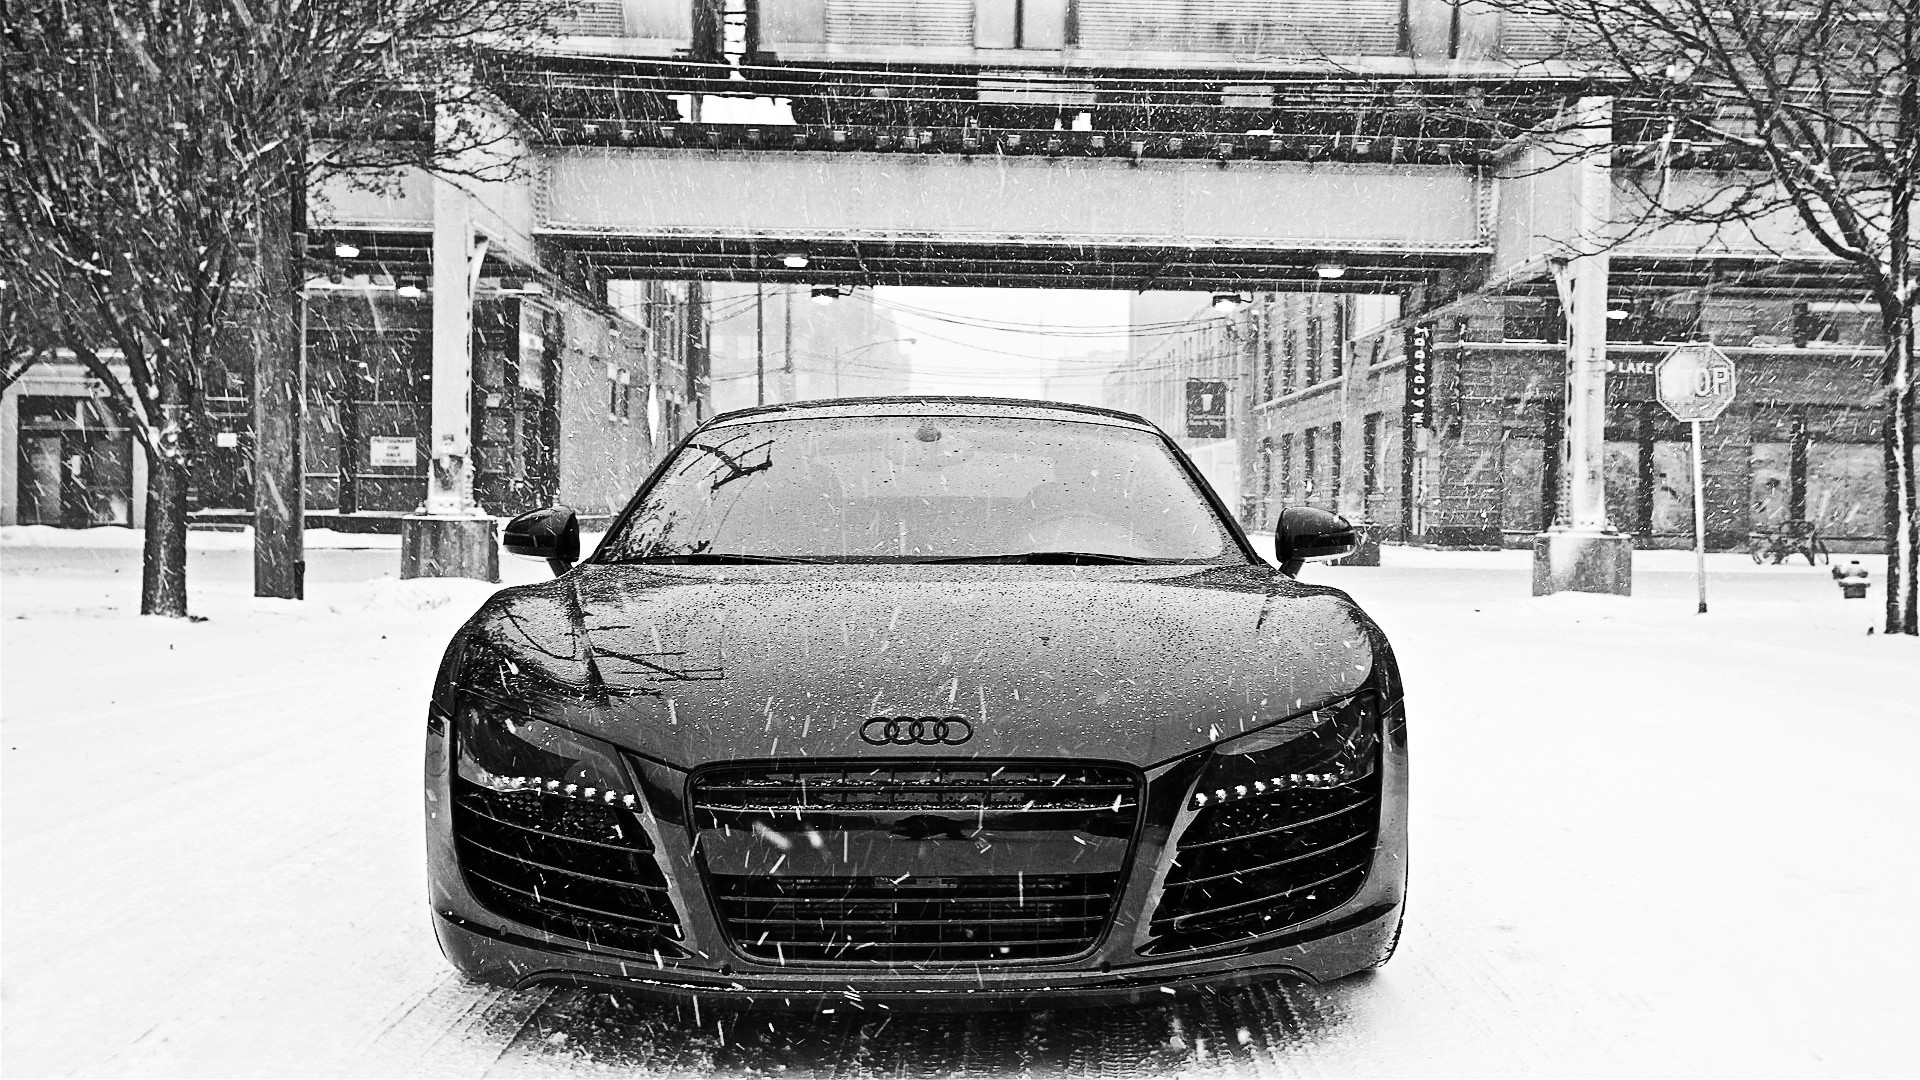 Cars Audi Roads R8 White V10 Wallpaper Allwallpaper In: Winter Snow Cars Audi R8 Front View Wallpaper